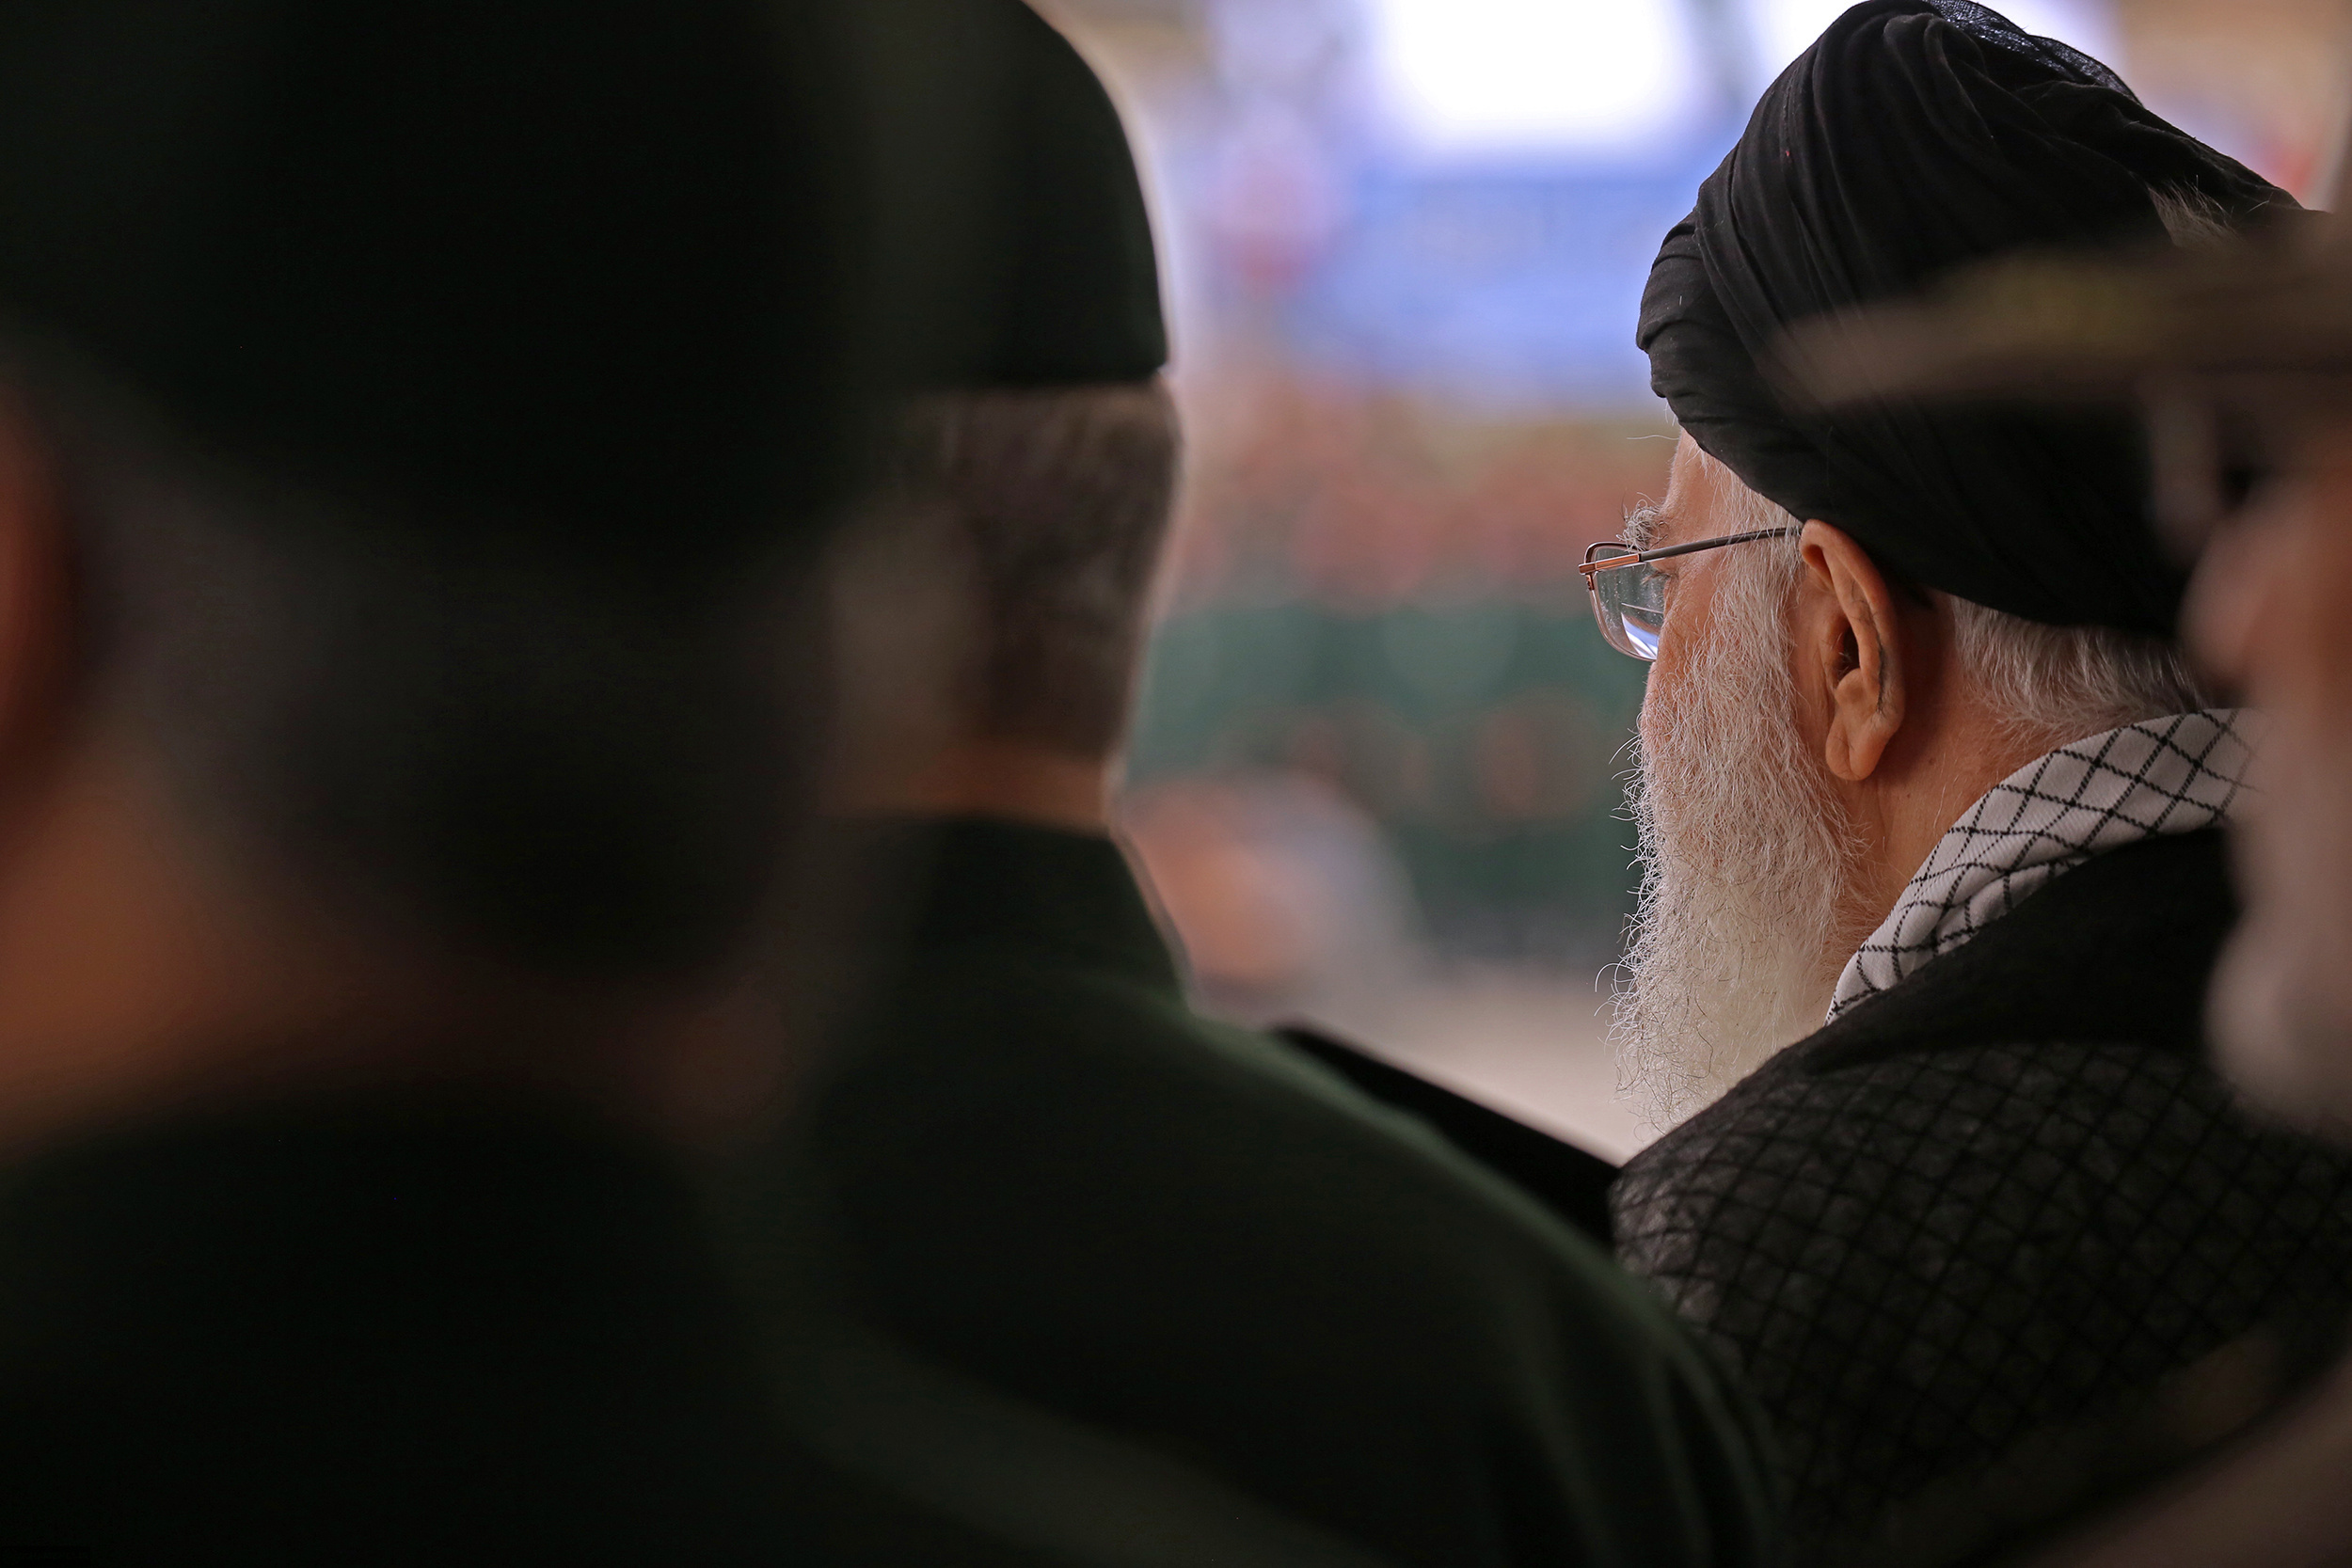 Imam Hussein [AS] Academy Graduation Ceremony Attended by Imam Khamenei